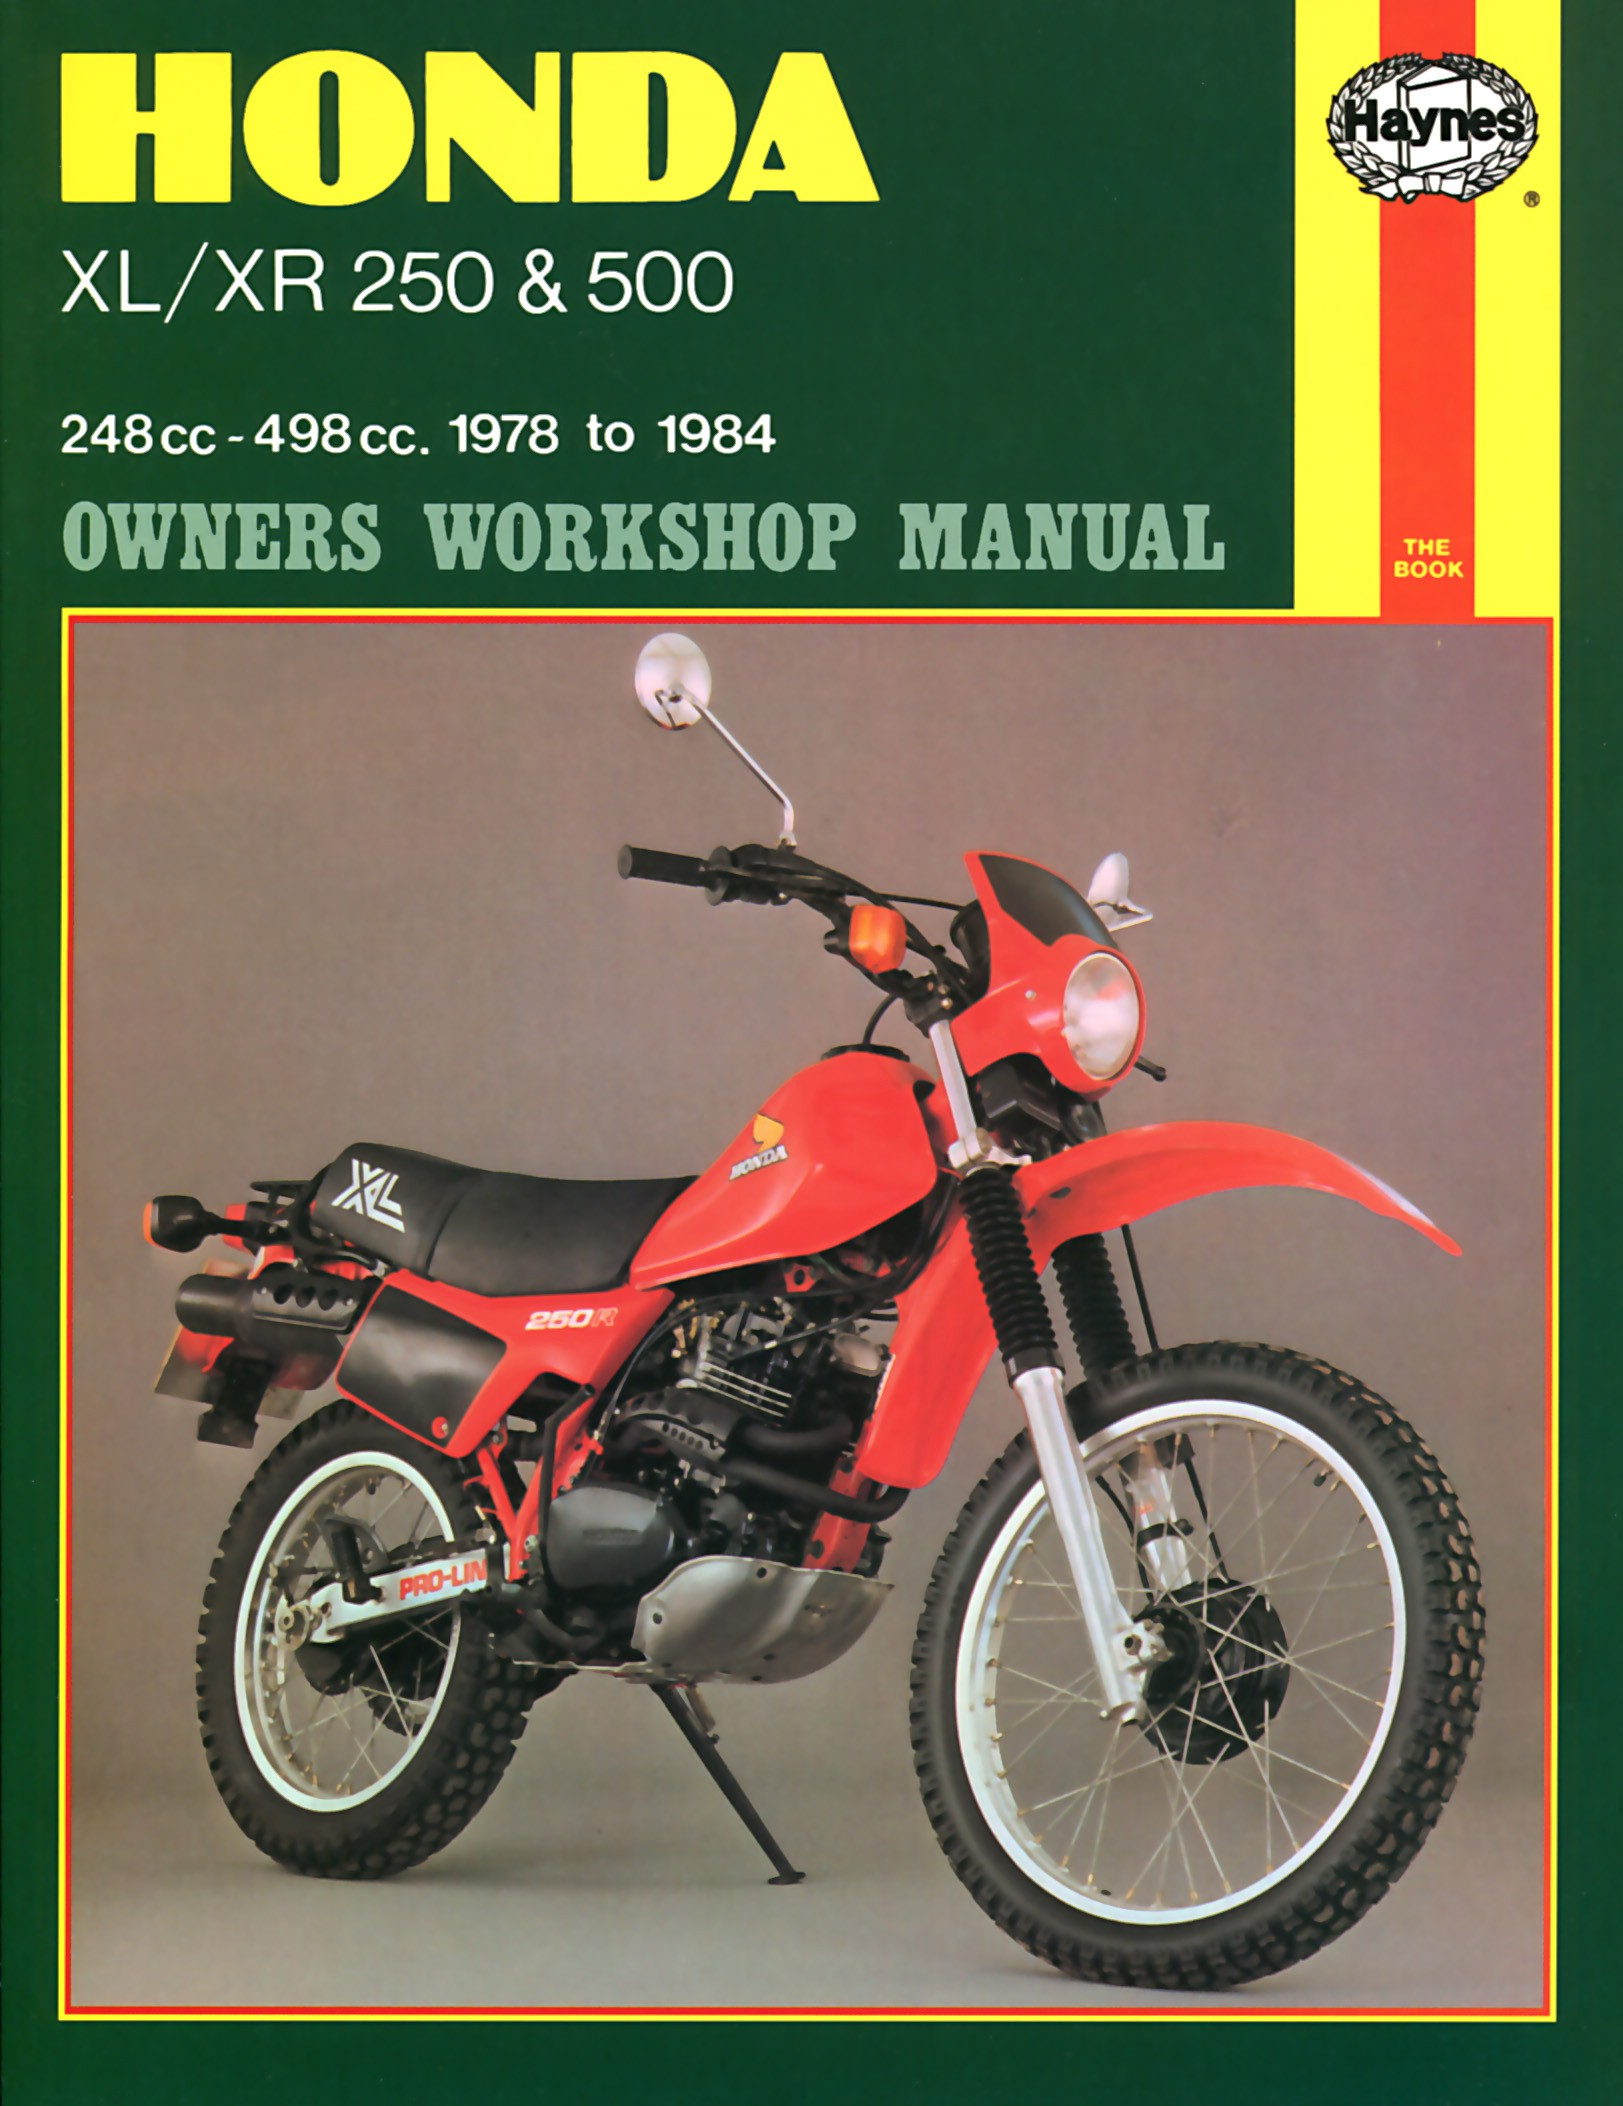 fits honda xr 250 s usa 1979 1980 manuals haynes each. Black Bedroom Furniture Sets. Home Design Ideas